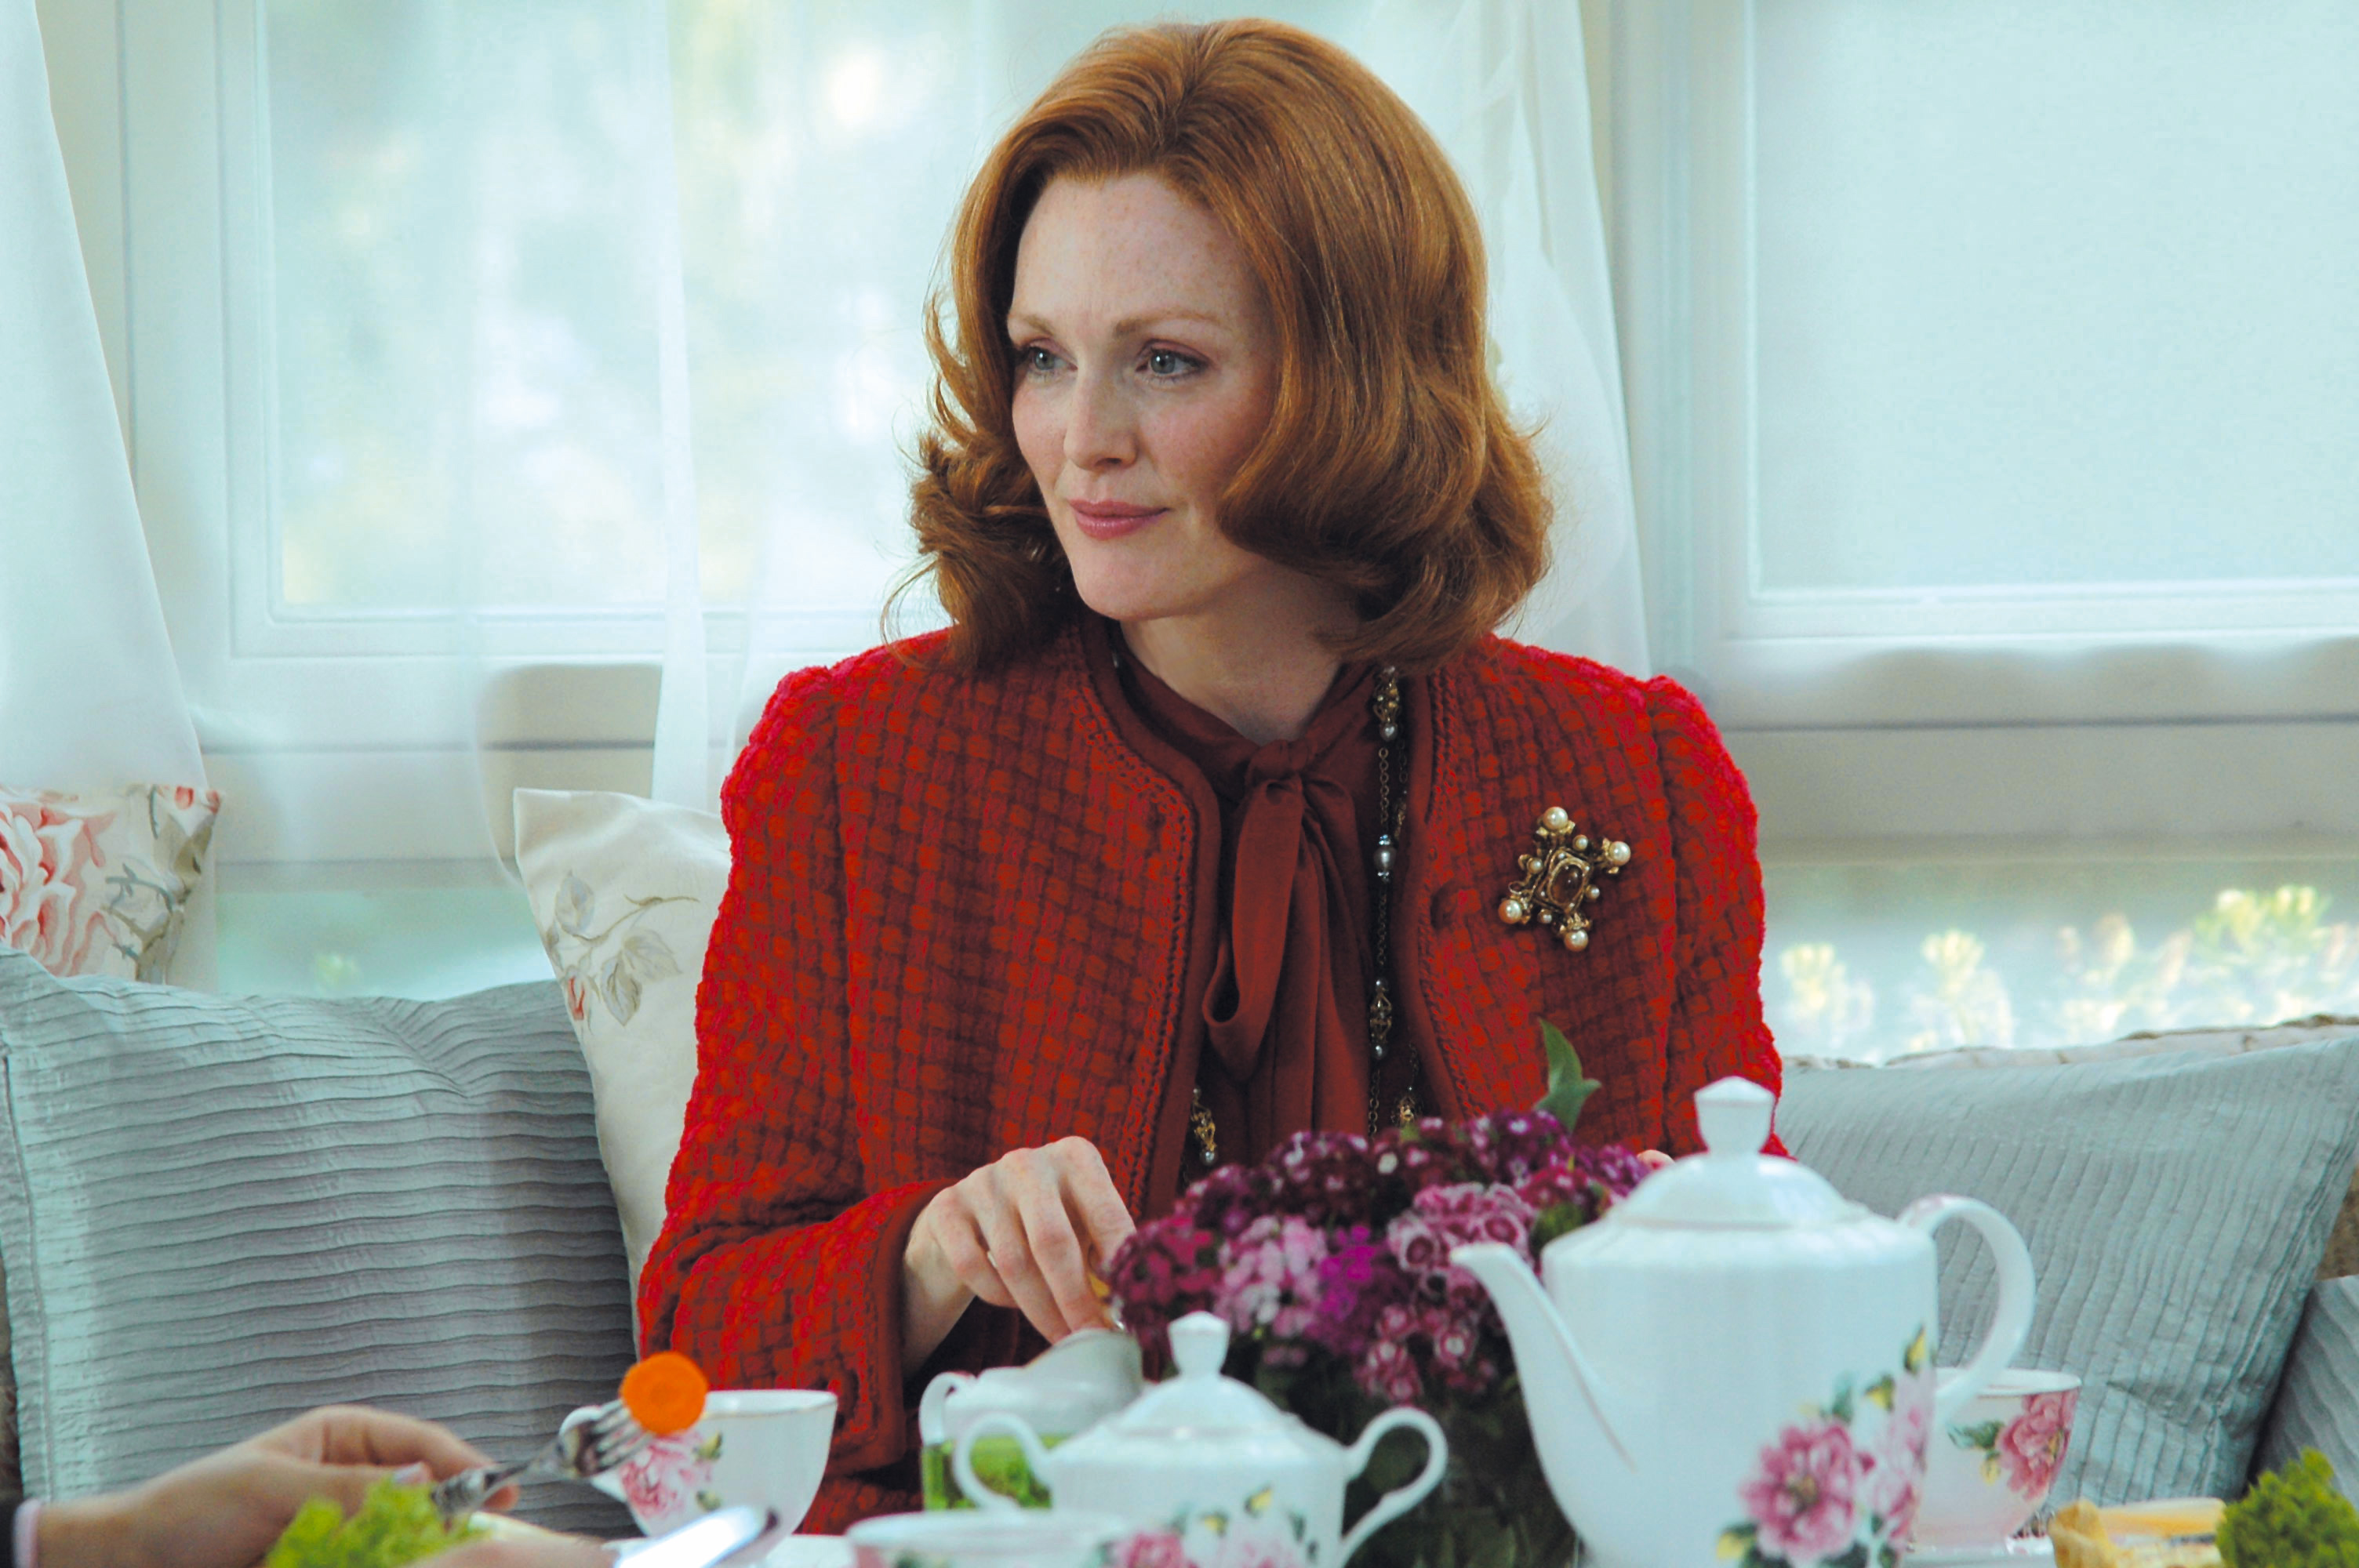 SG3_JulianneMoore.jpg